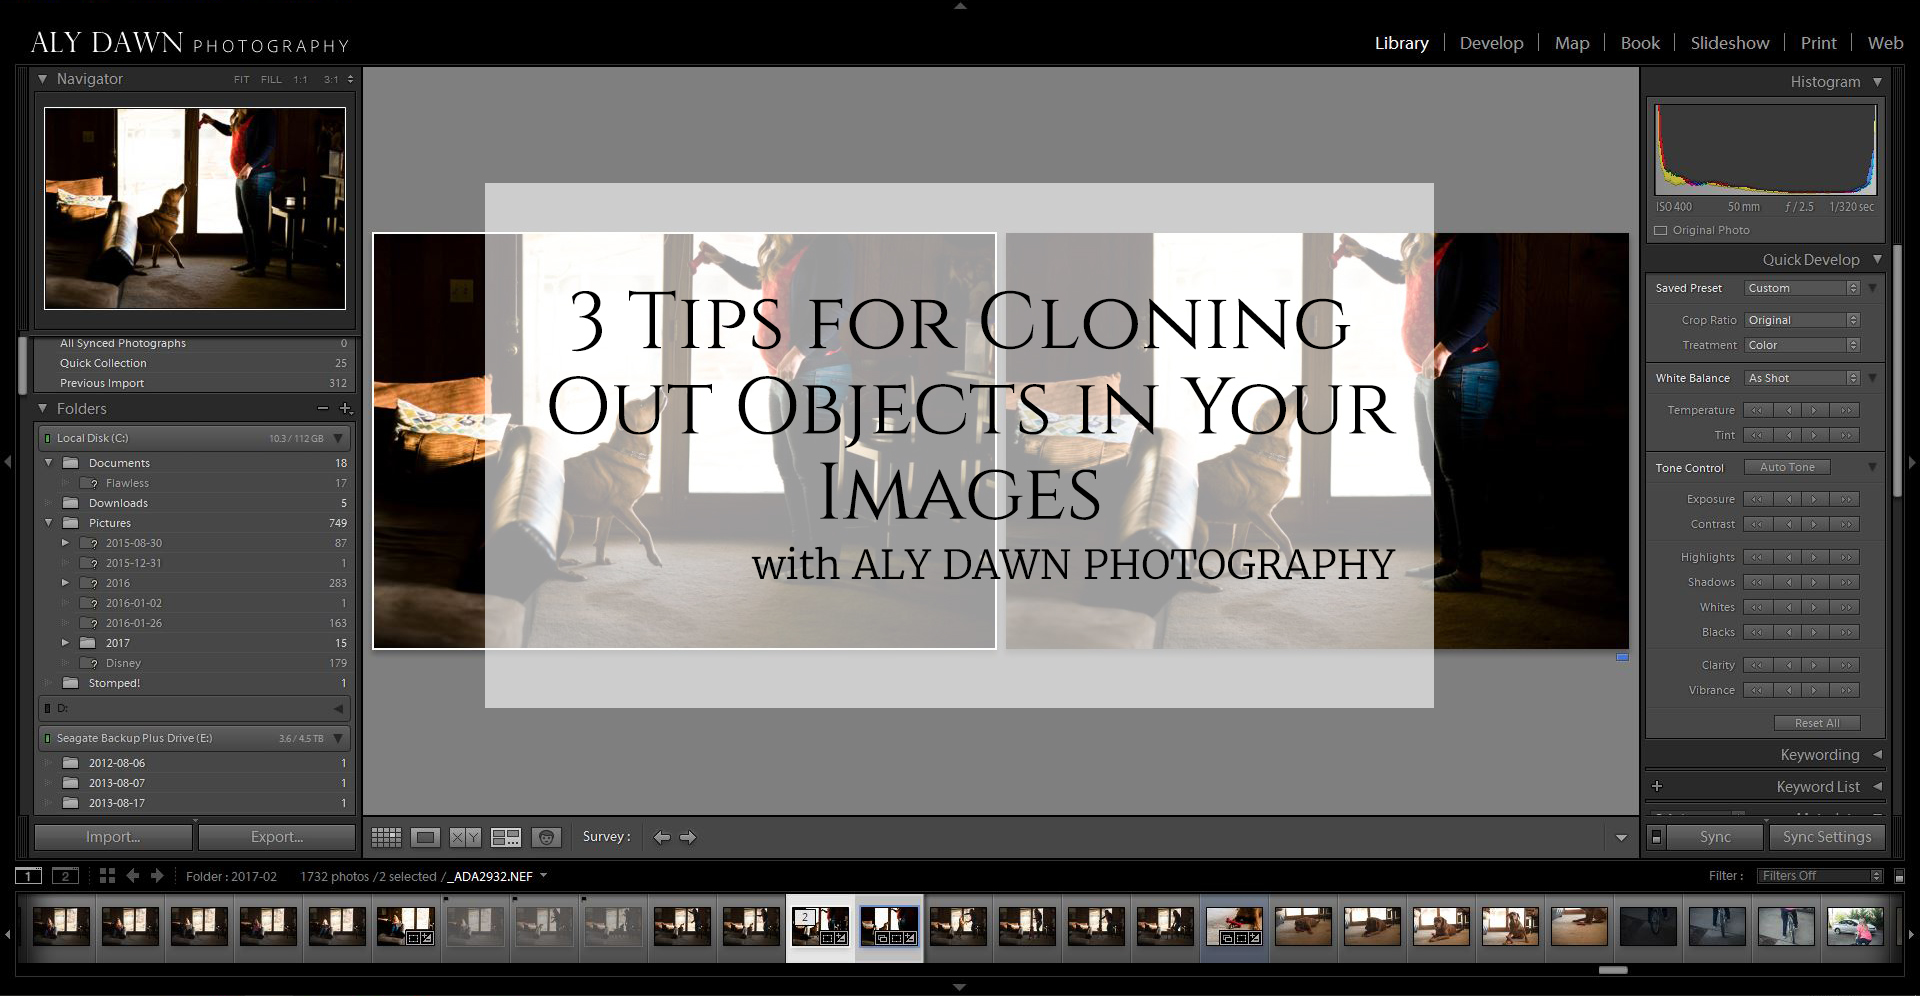 3 Tips for Cloning Out Objects in Your Images